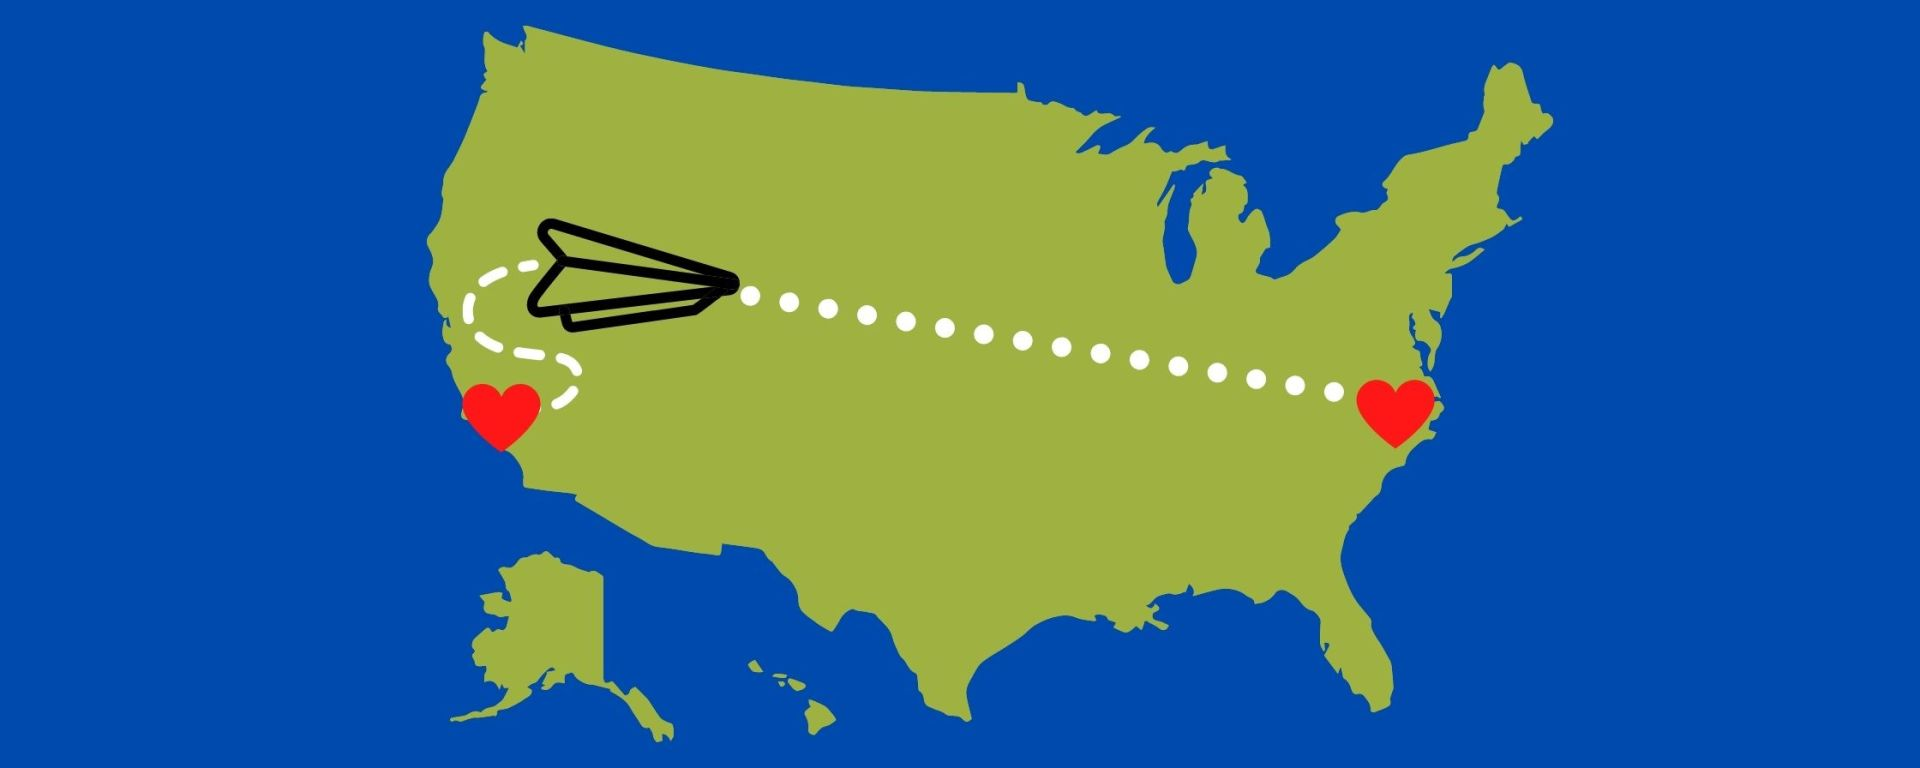 Map of the United States with a paper airplane being mailed from one heart to another representing a long-distance relationship.